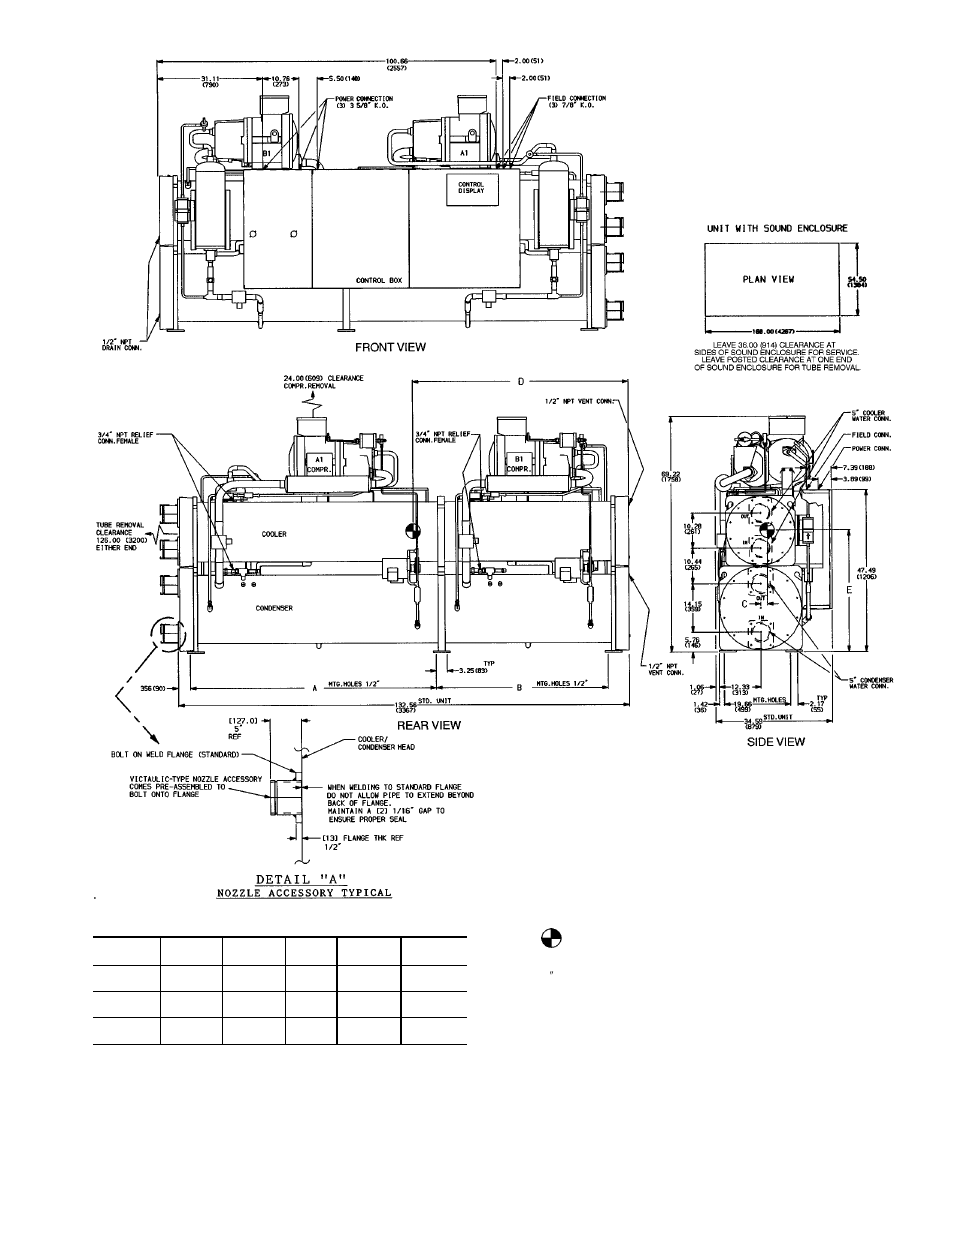 Carrier 30HXA,HXC076-186 Water-Cooled and Condenserless Chillers User Manual    Page